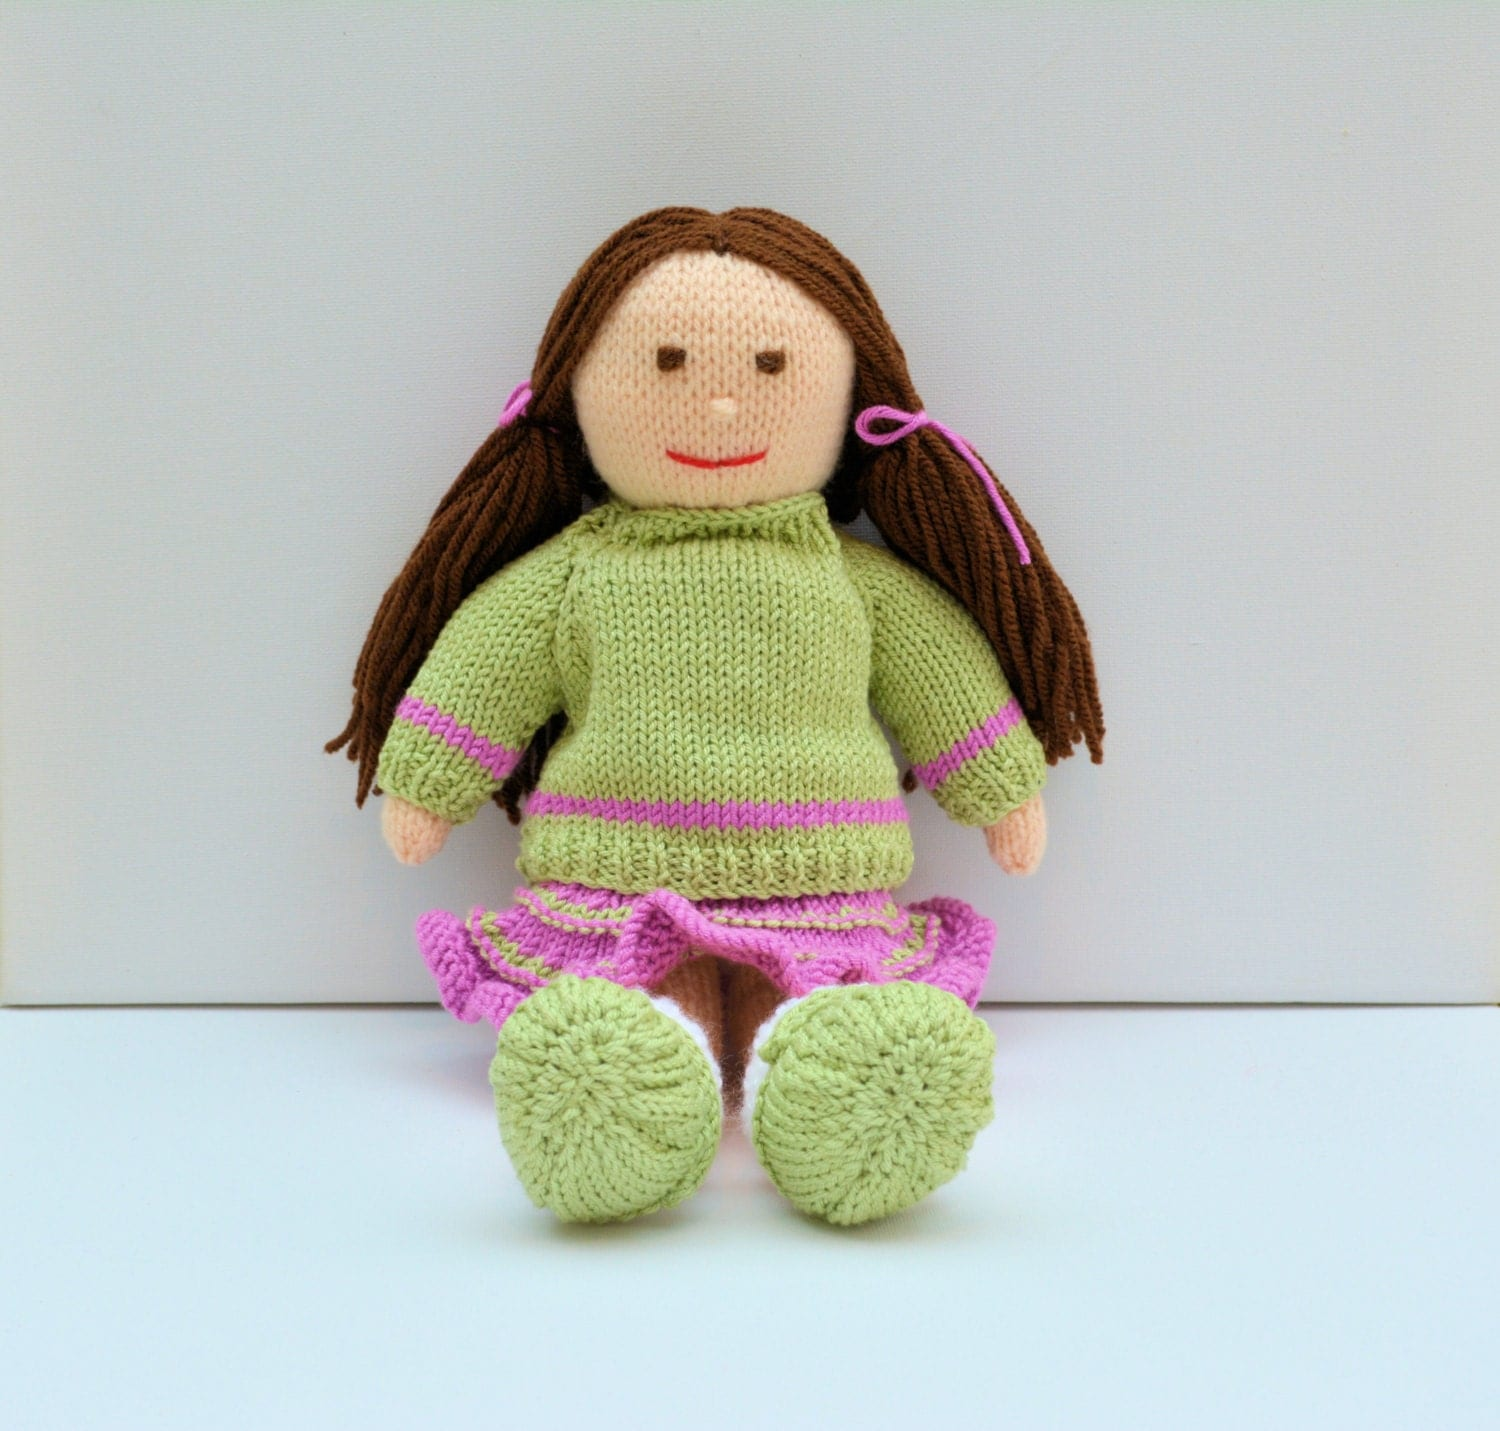 Rag Doll Knitting Pattern Doll Knitting Pattern Toy Knitting